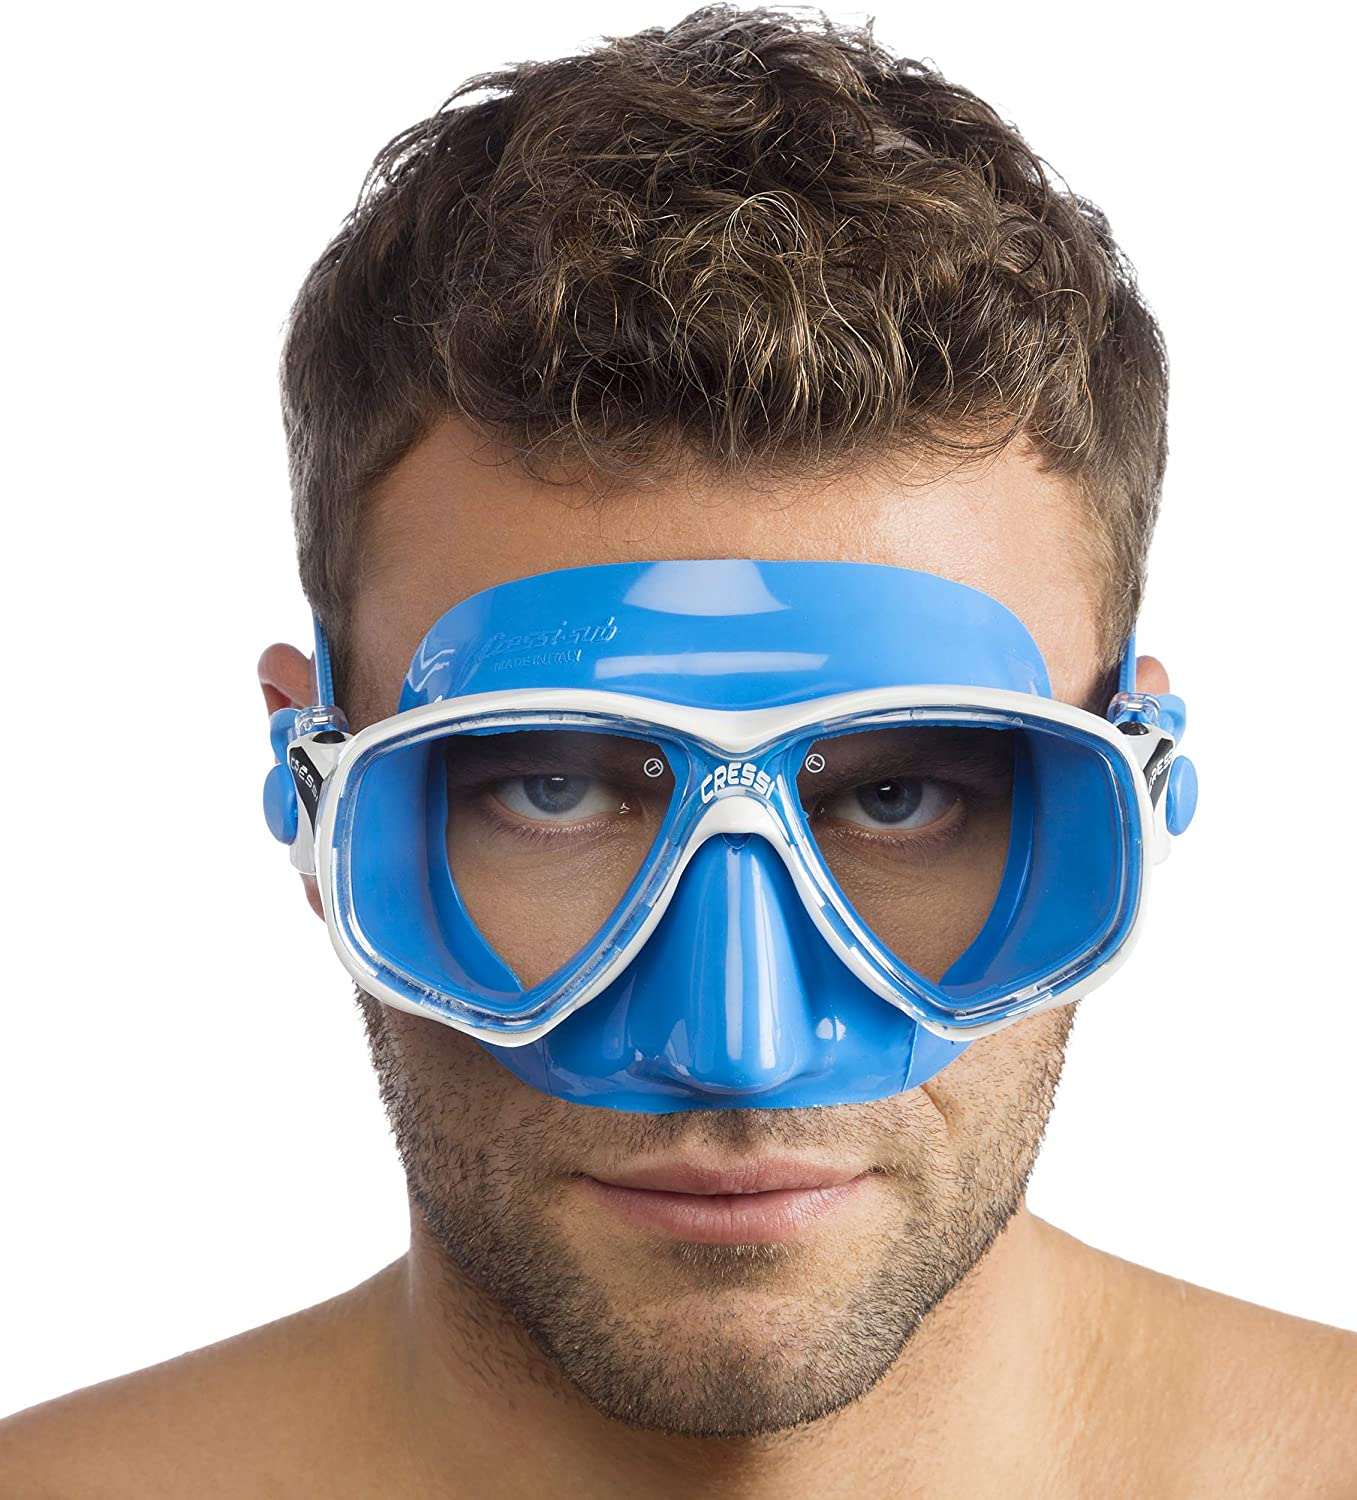 Adult Small Inner Volume Mask for Scuba Snorkeling Quality Since 1946 Marea Made in Italy by Cressi